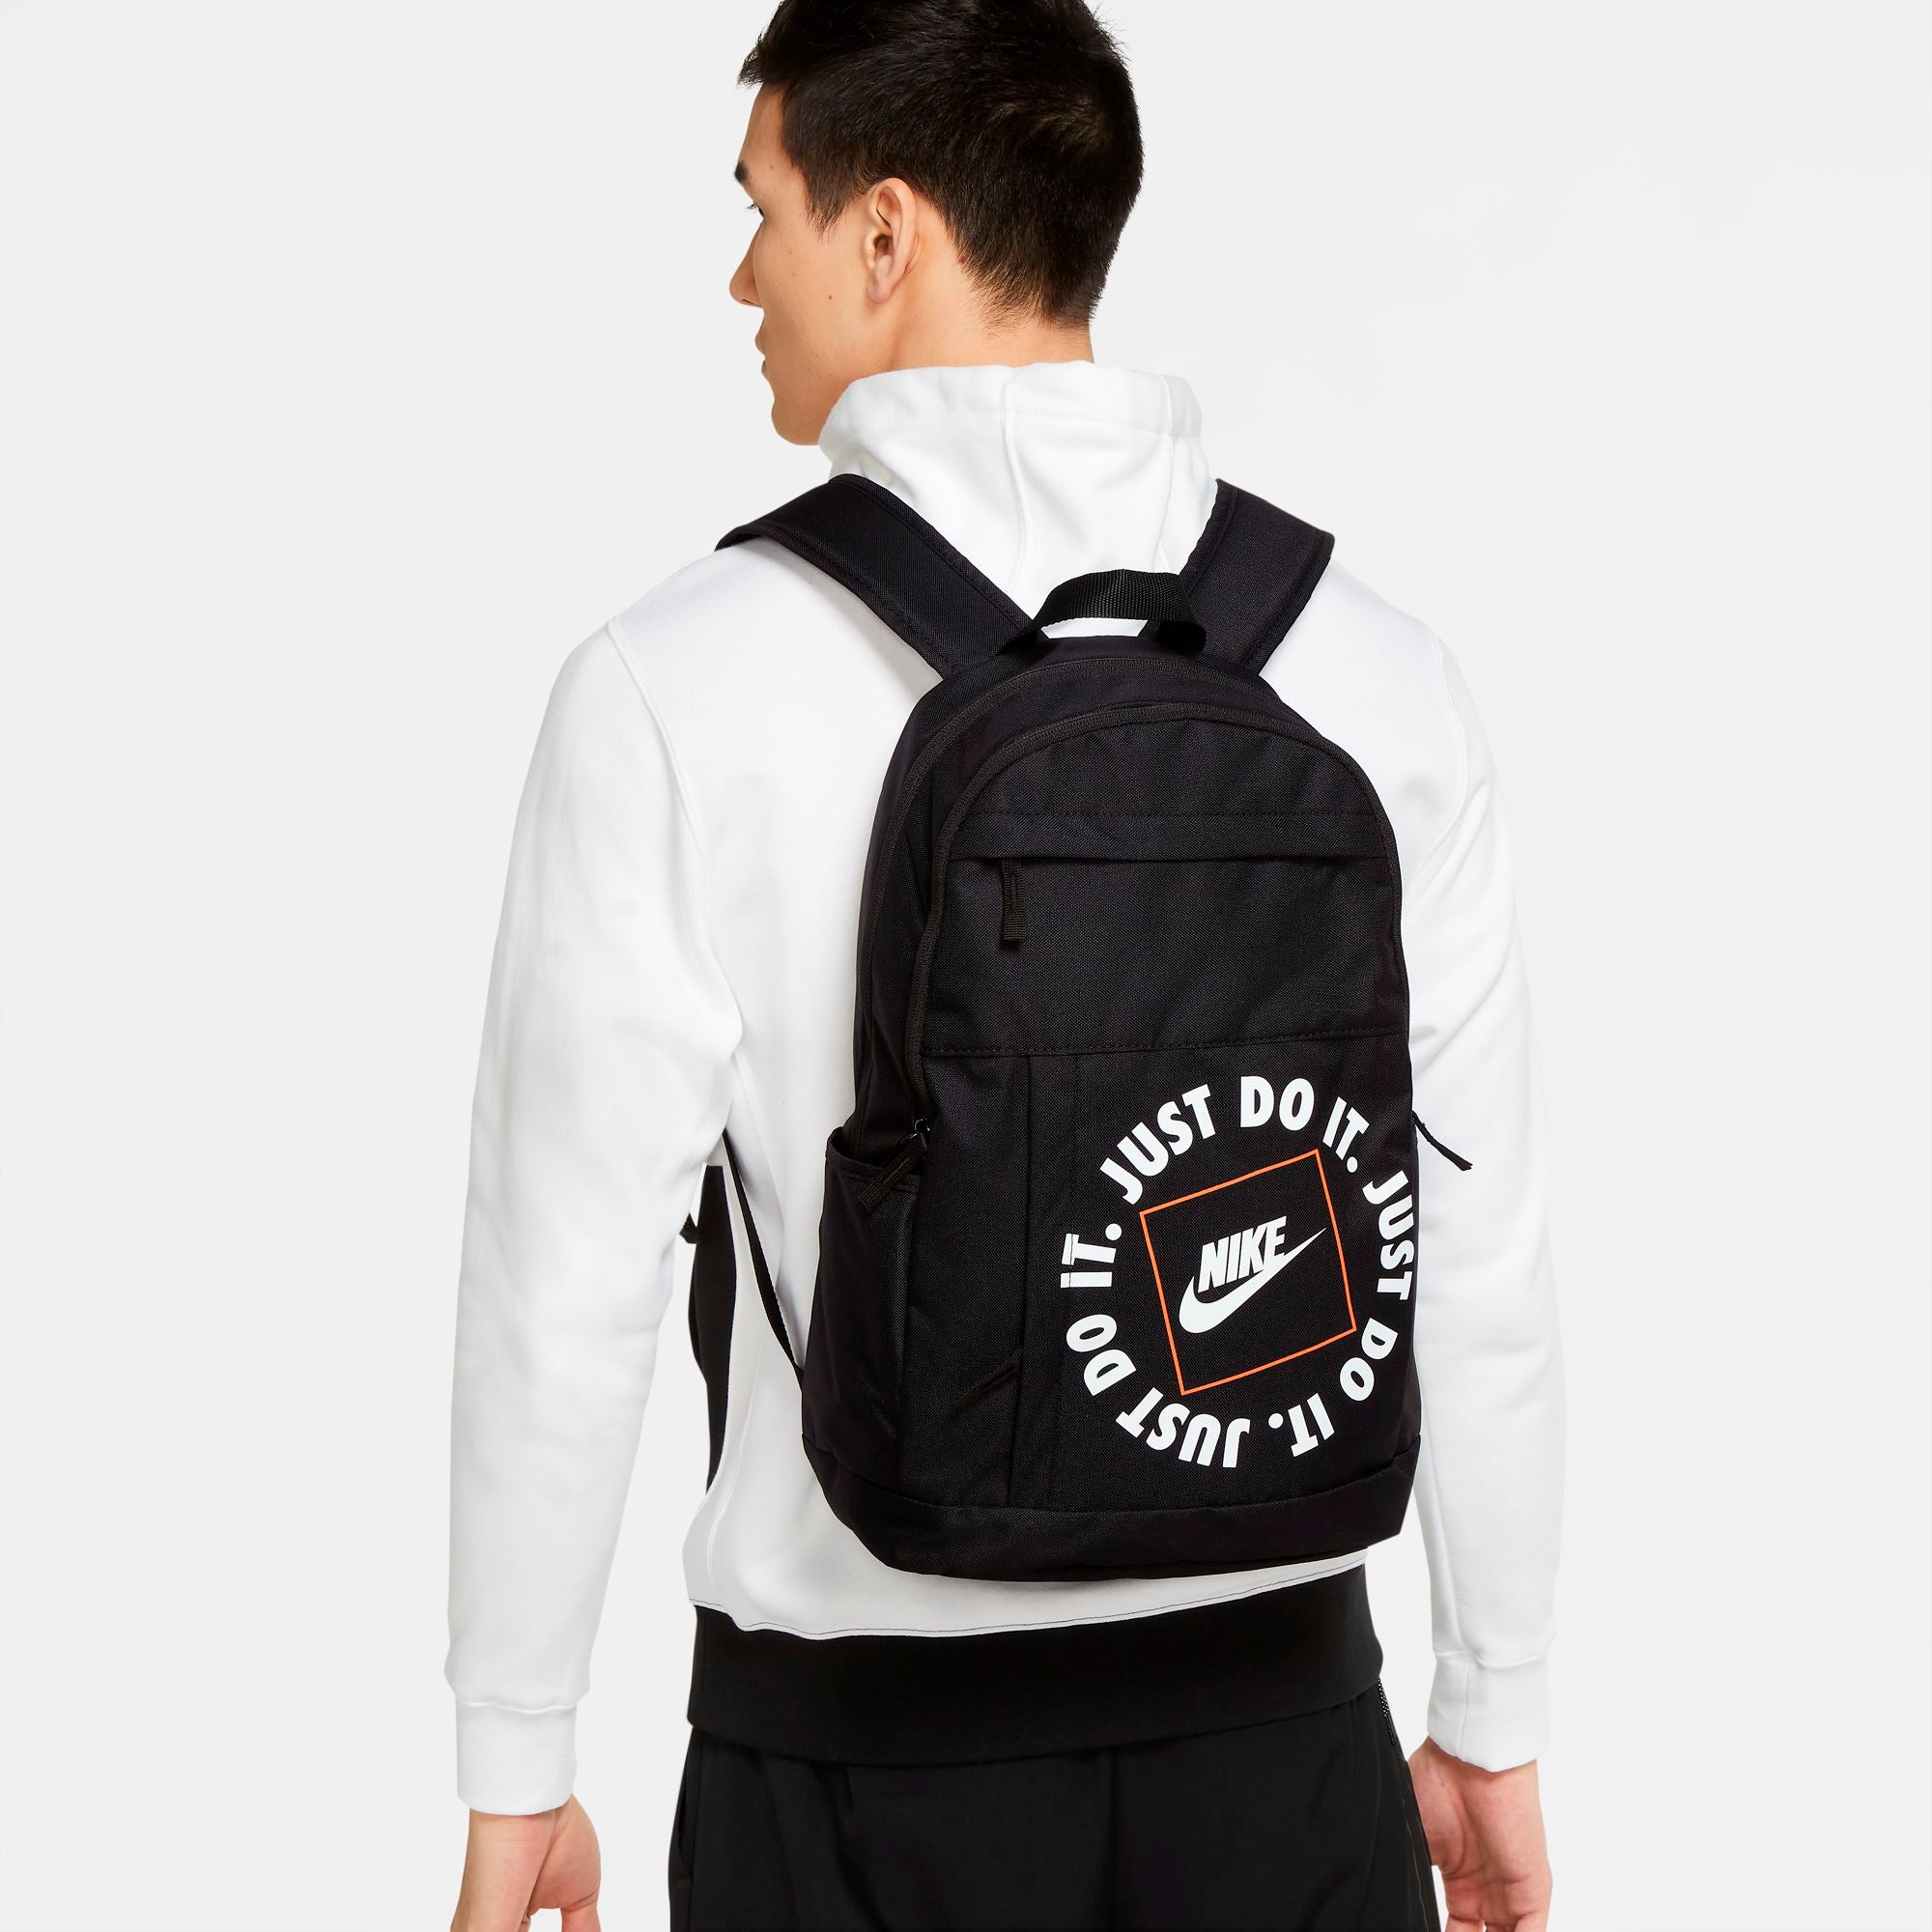 Nike Elemental JDI Backpack - Black/Black/White SP-Accessories-Bags Nike